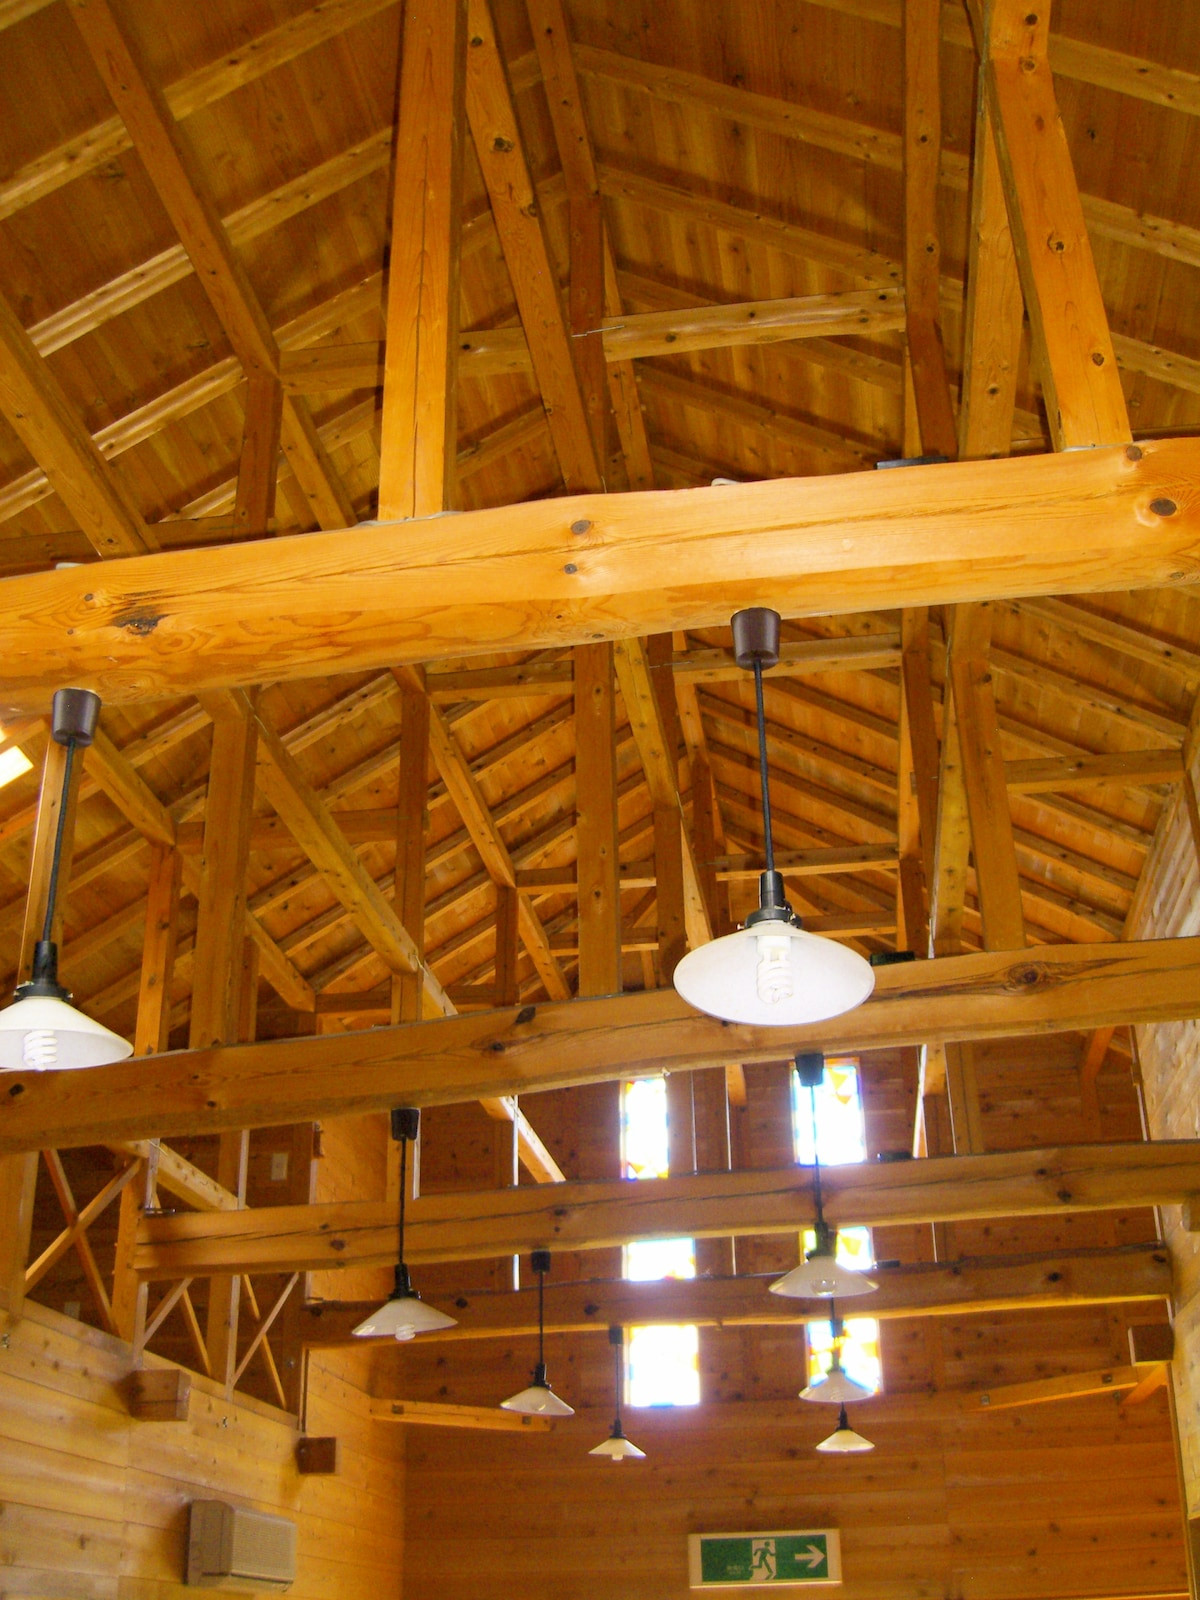 The main inn's hand-carved beams evoke historical Japanese architecture.